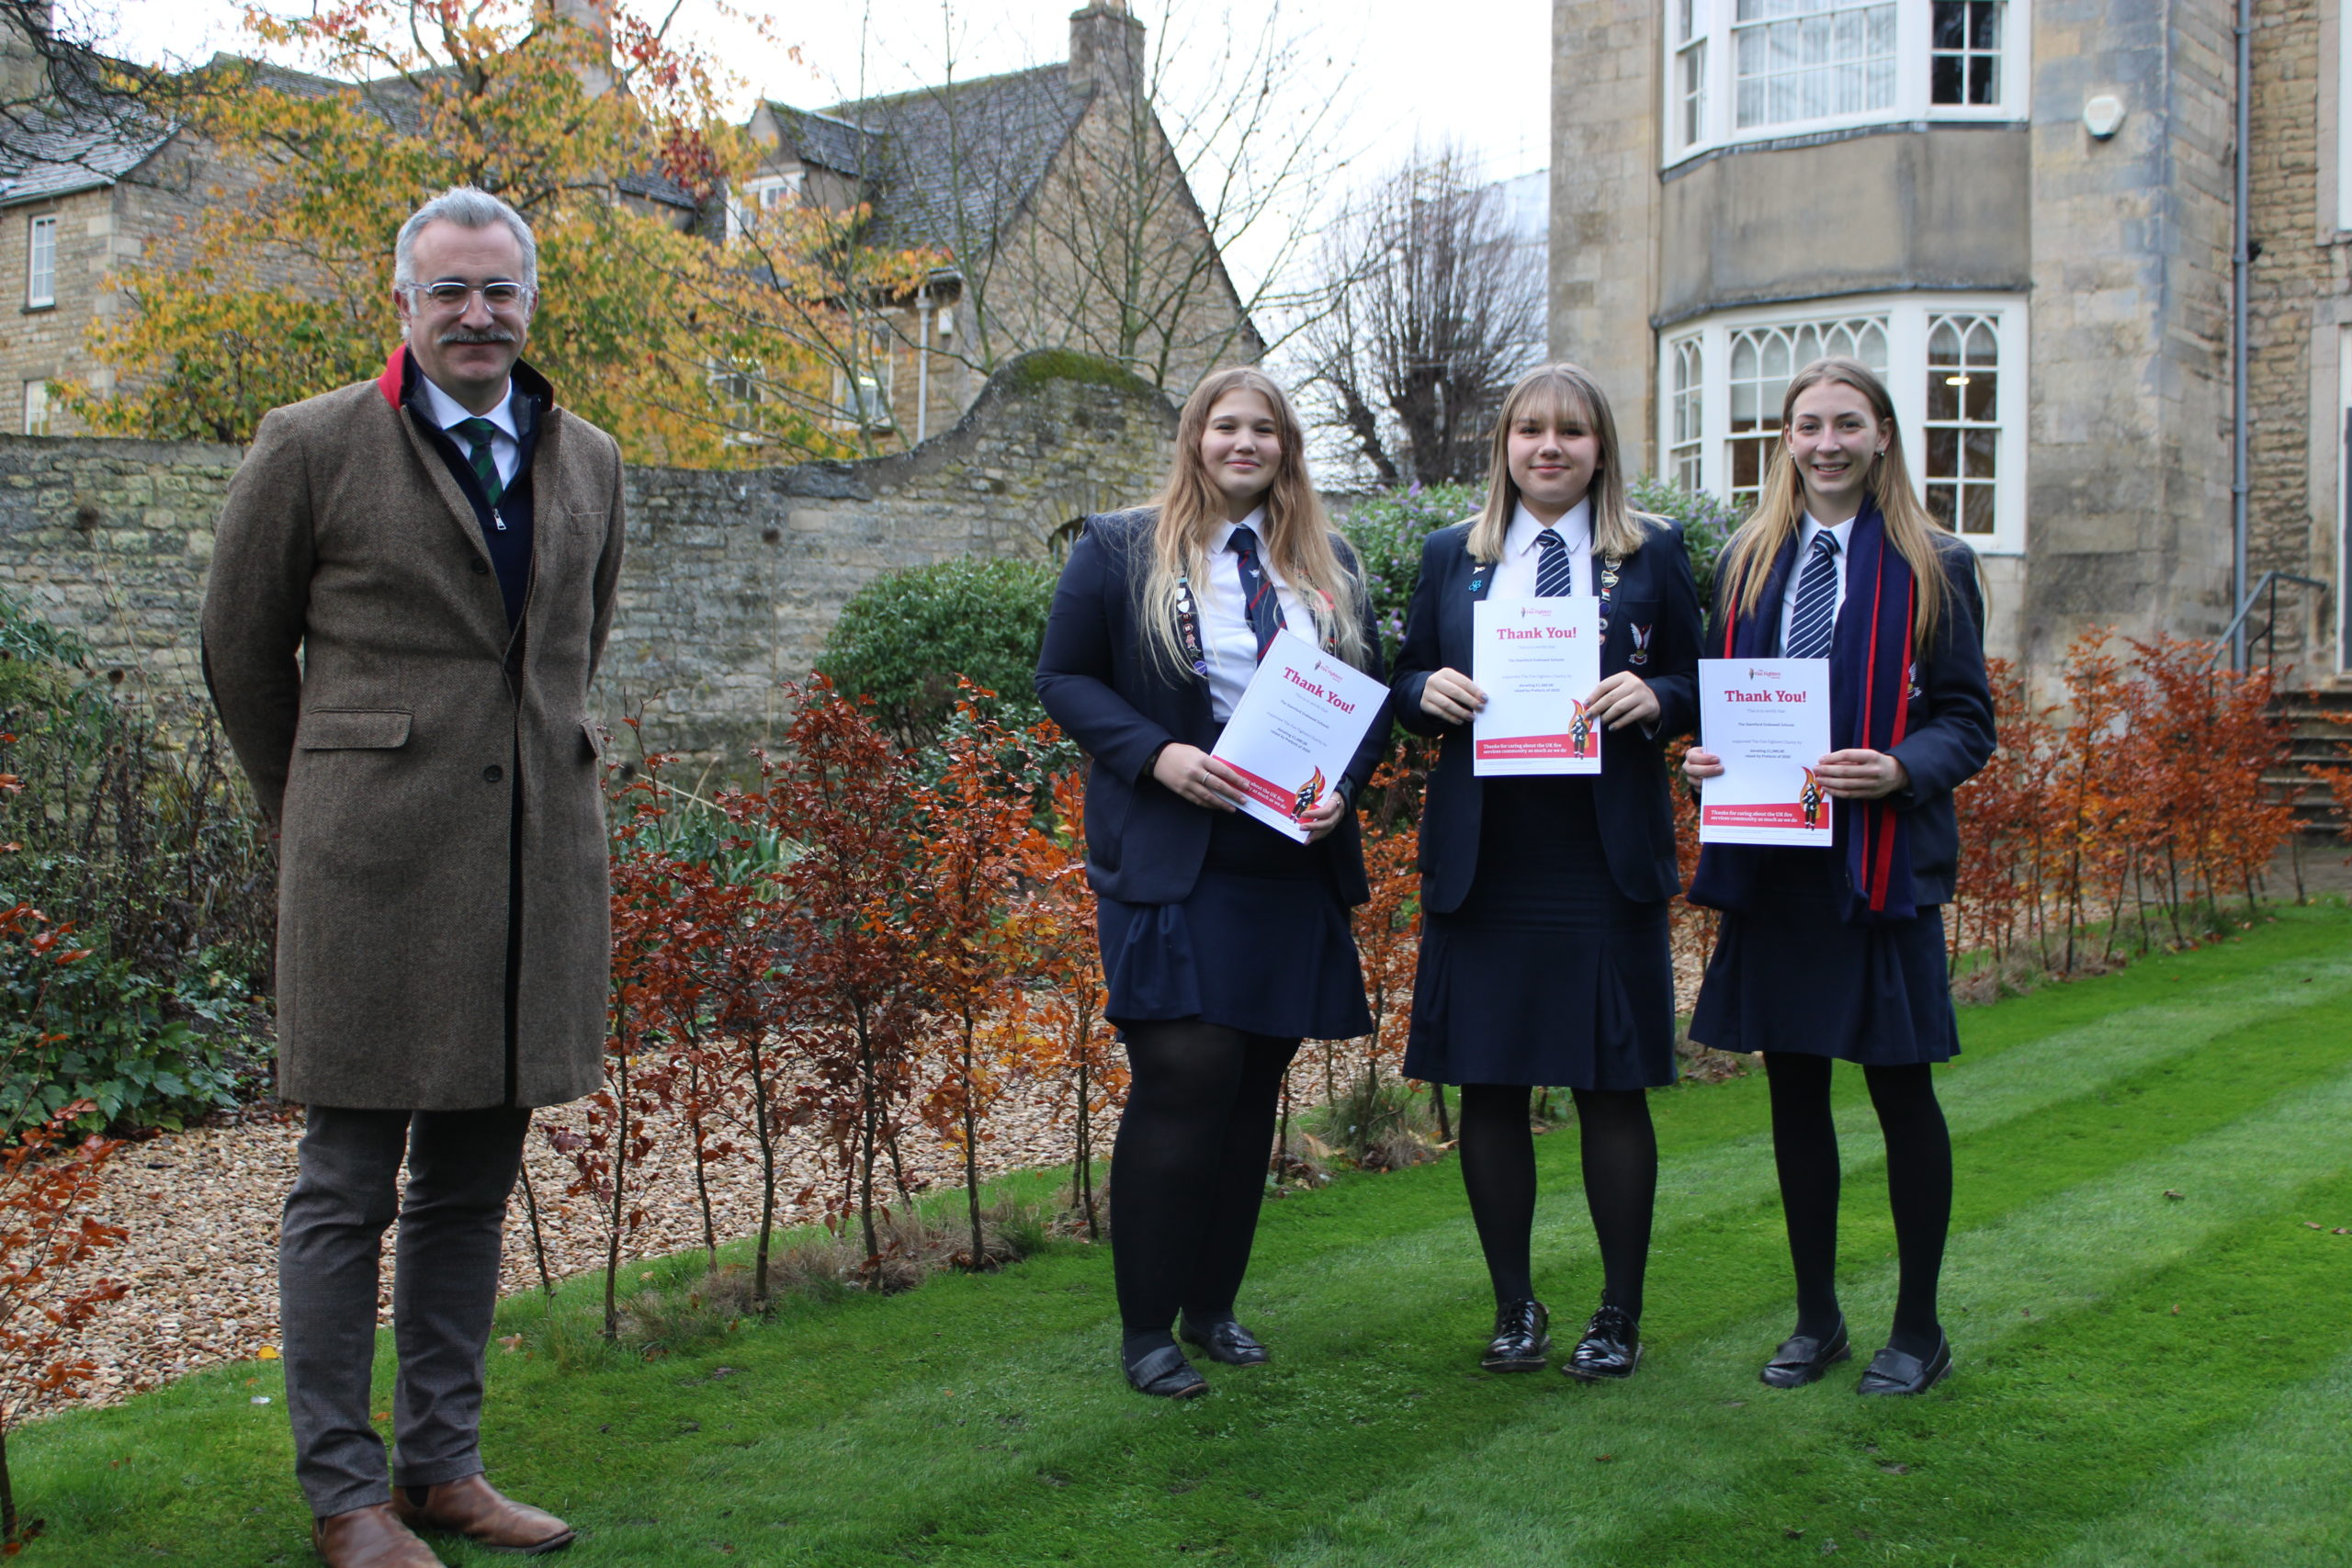 Students receive certificates forFundraising